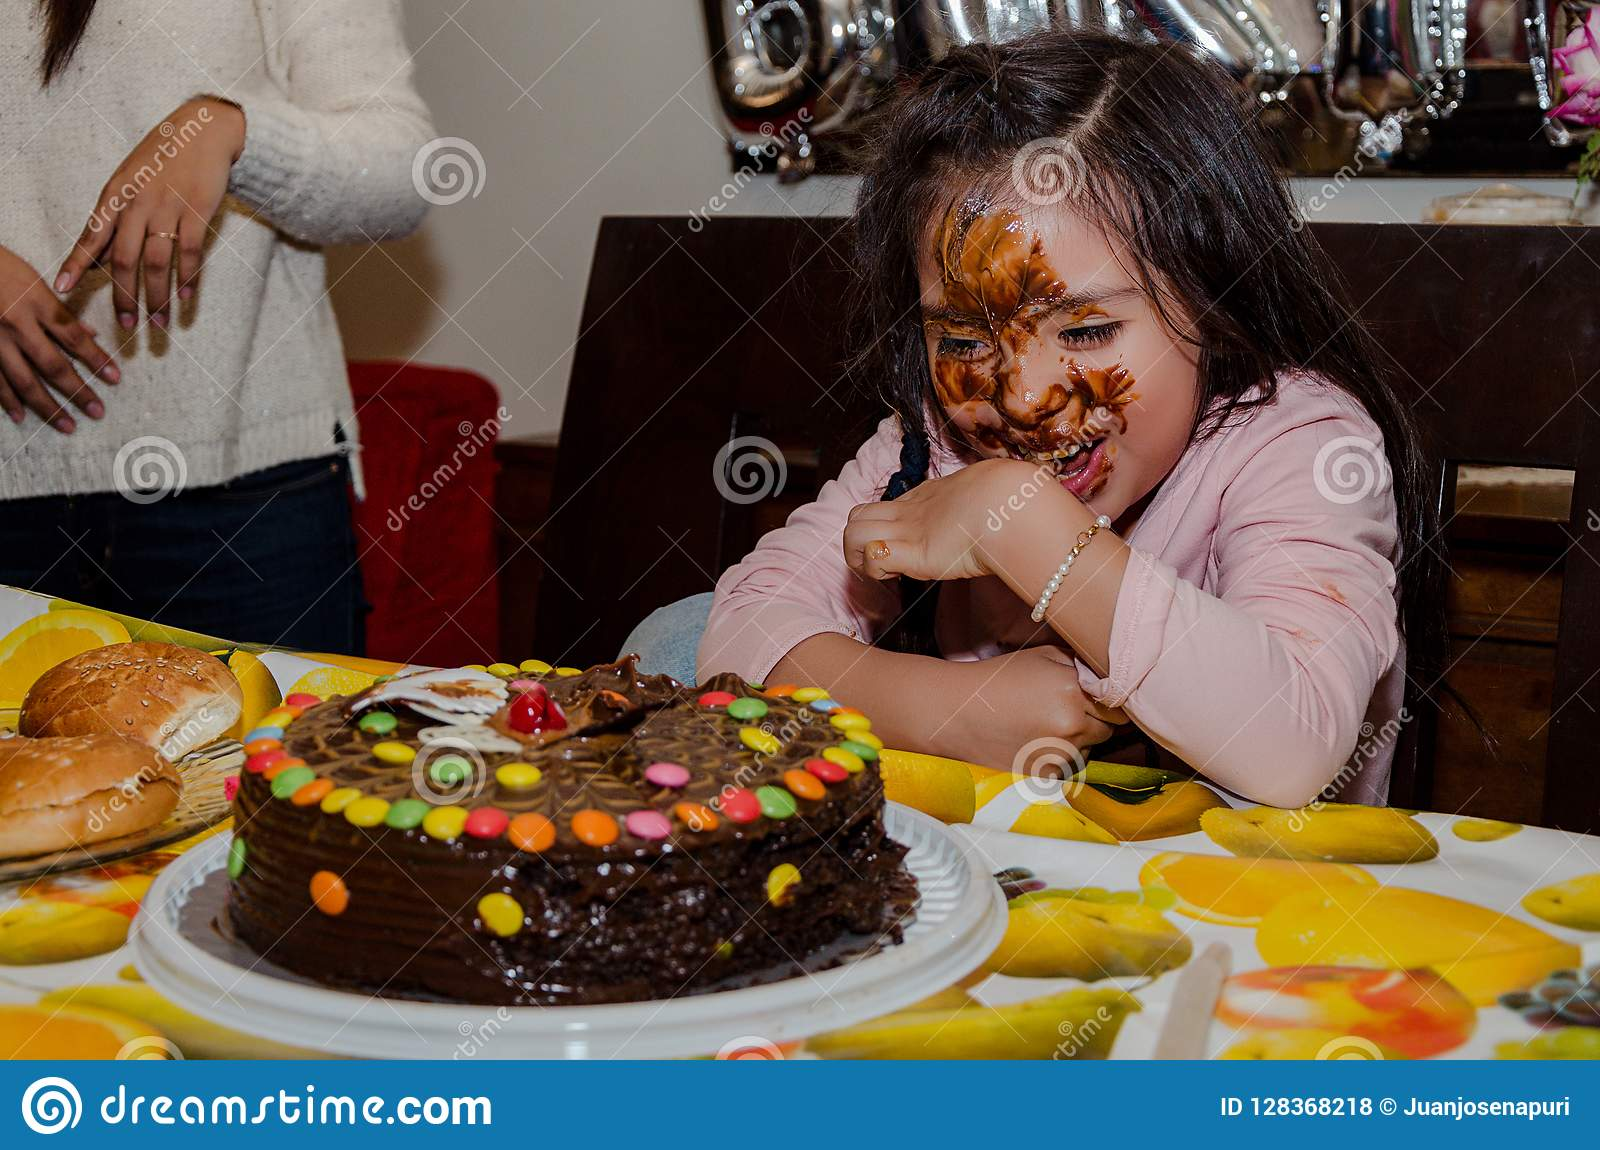 Wondrous 6 Year Old Girl Celebrating Her Birthday By Putting Her Face Funny Birthday Cards Online Unhofree Goldxyz